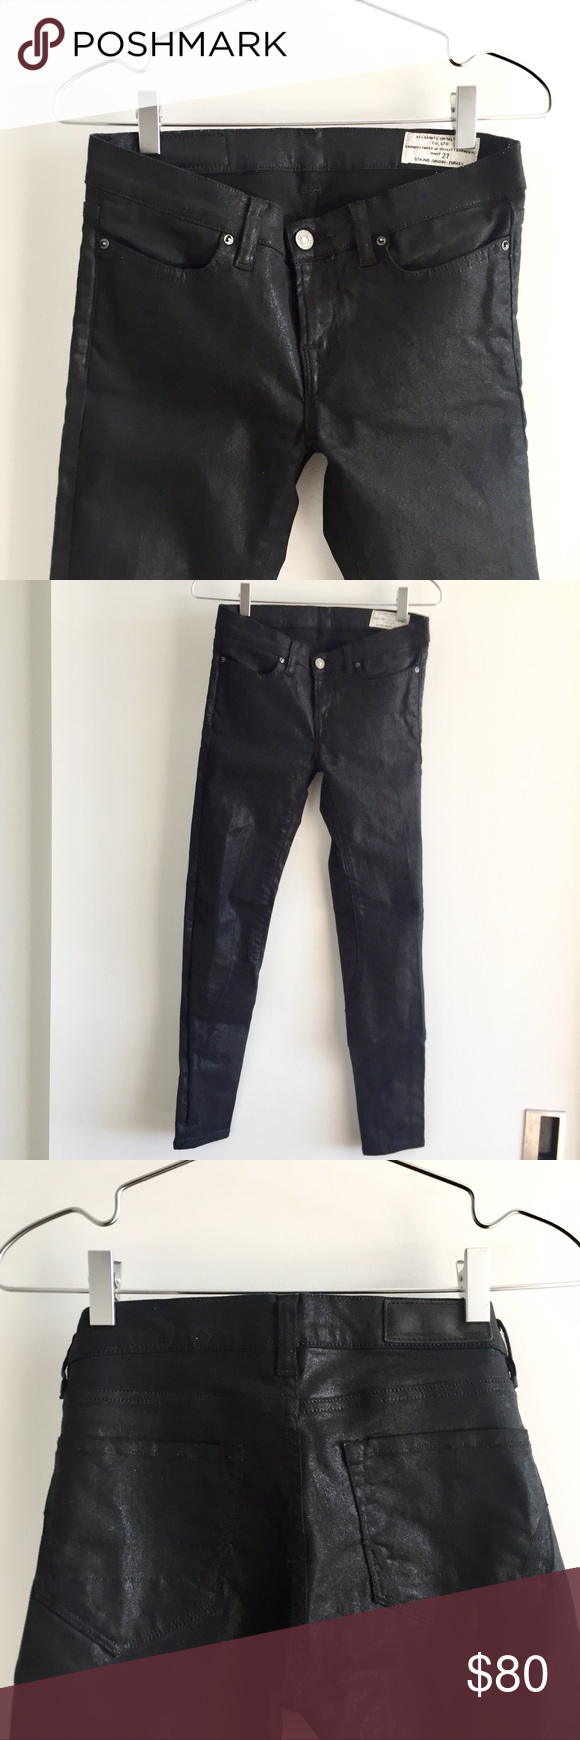 All Saints Coated Black Skinny Jeans w/ Ankle Zips Coated black skinny jeans from All Saints. Low-rise waist, minimal stretch denim, with short zippers at the ankle opening. The size is labeled as 27 but I would say fits more like a small 26. Rarely worn, very good condition. All Saints Jeans Skinny